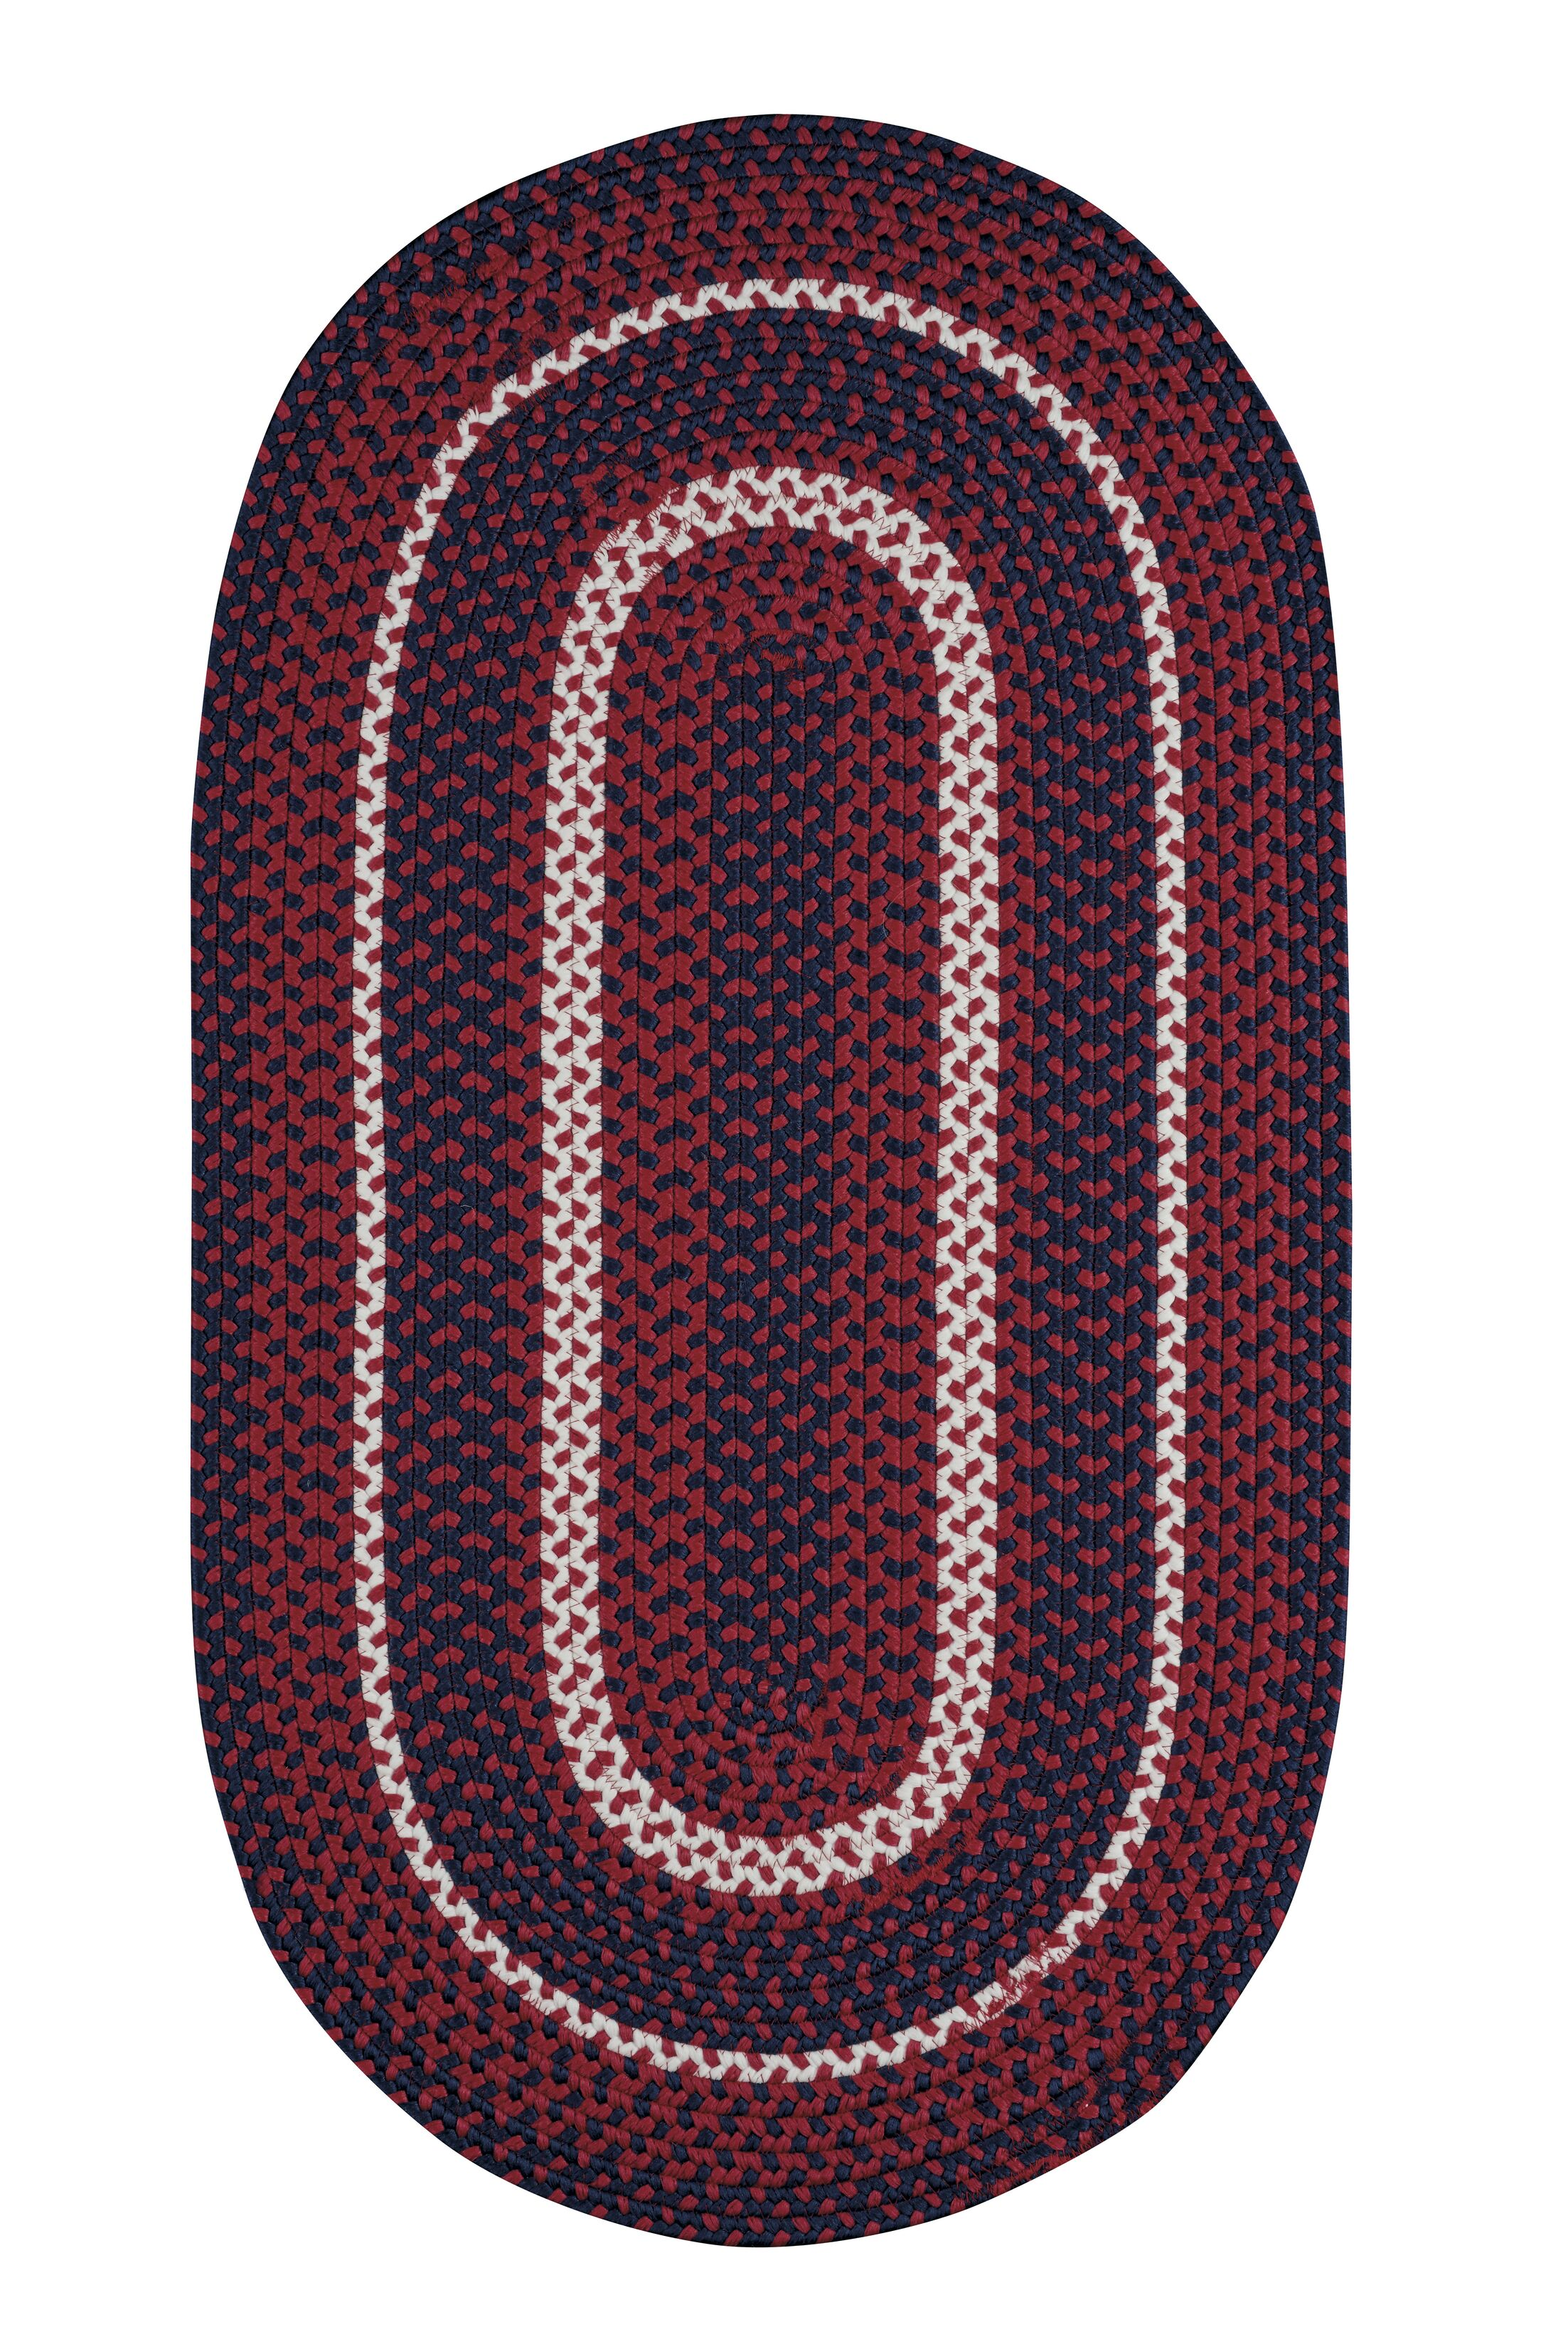 Wieland Hand-Braided Red Area Rug Rug Size: Oval 3' x 5'